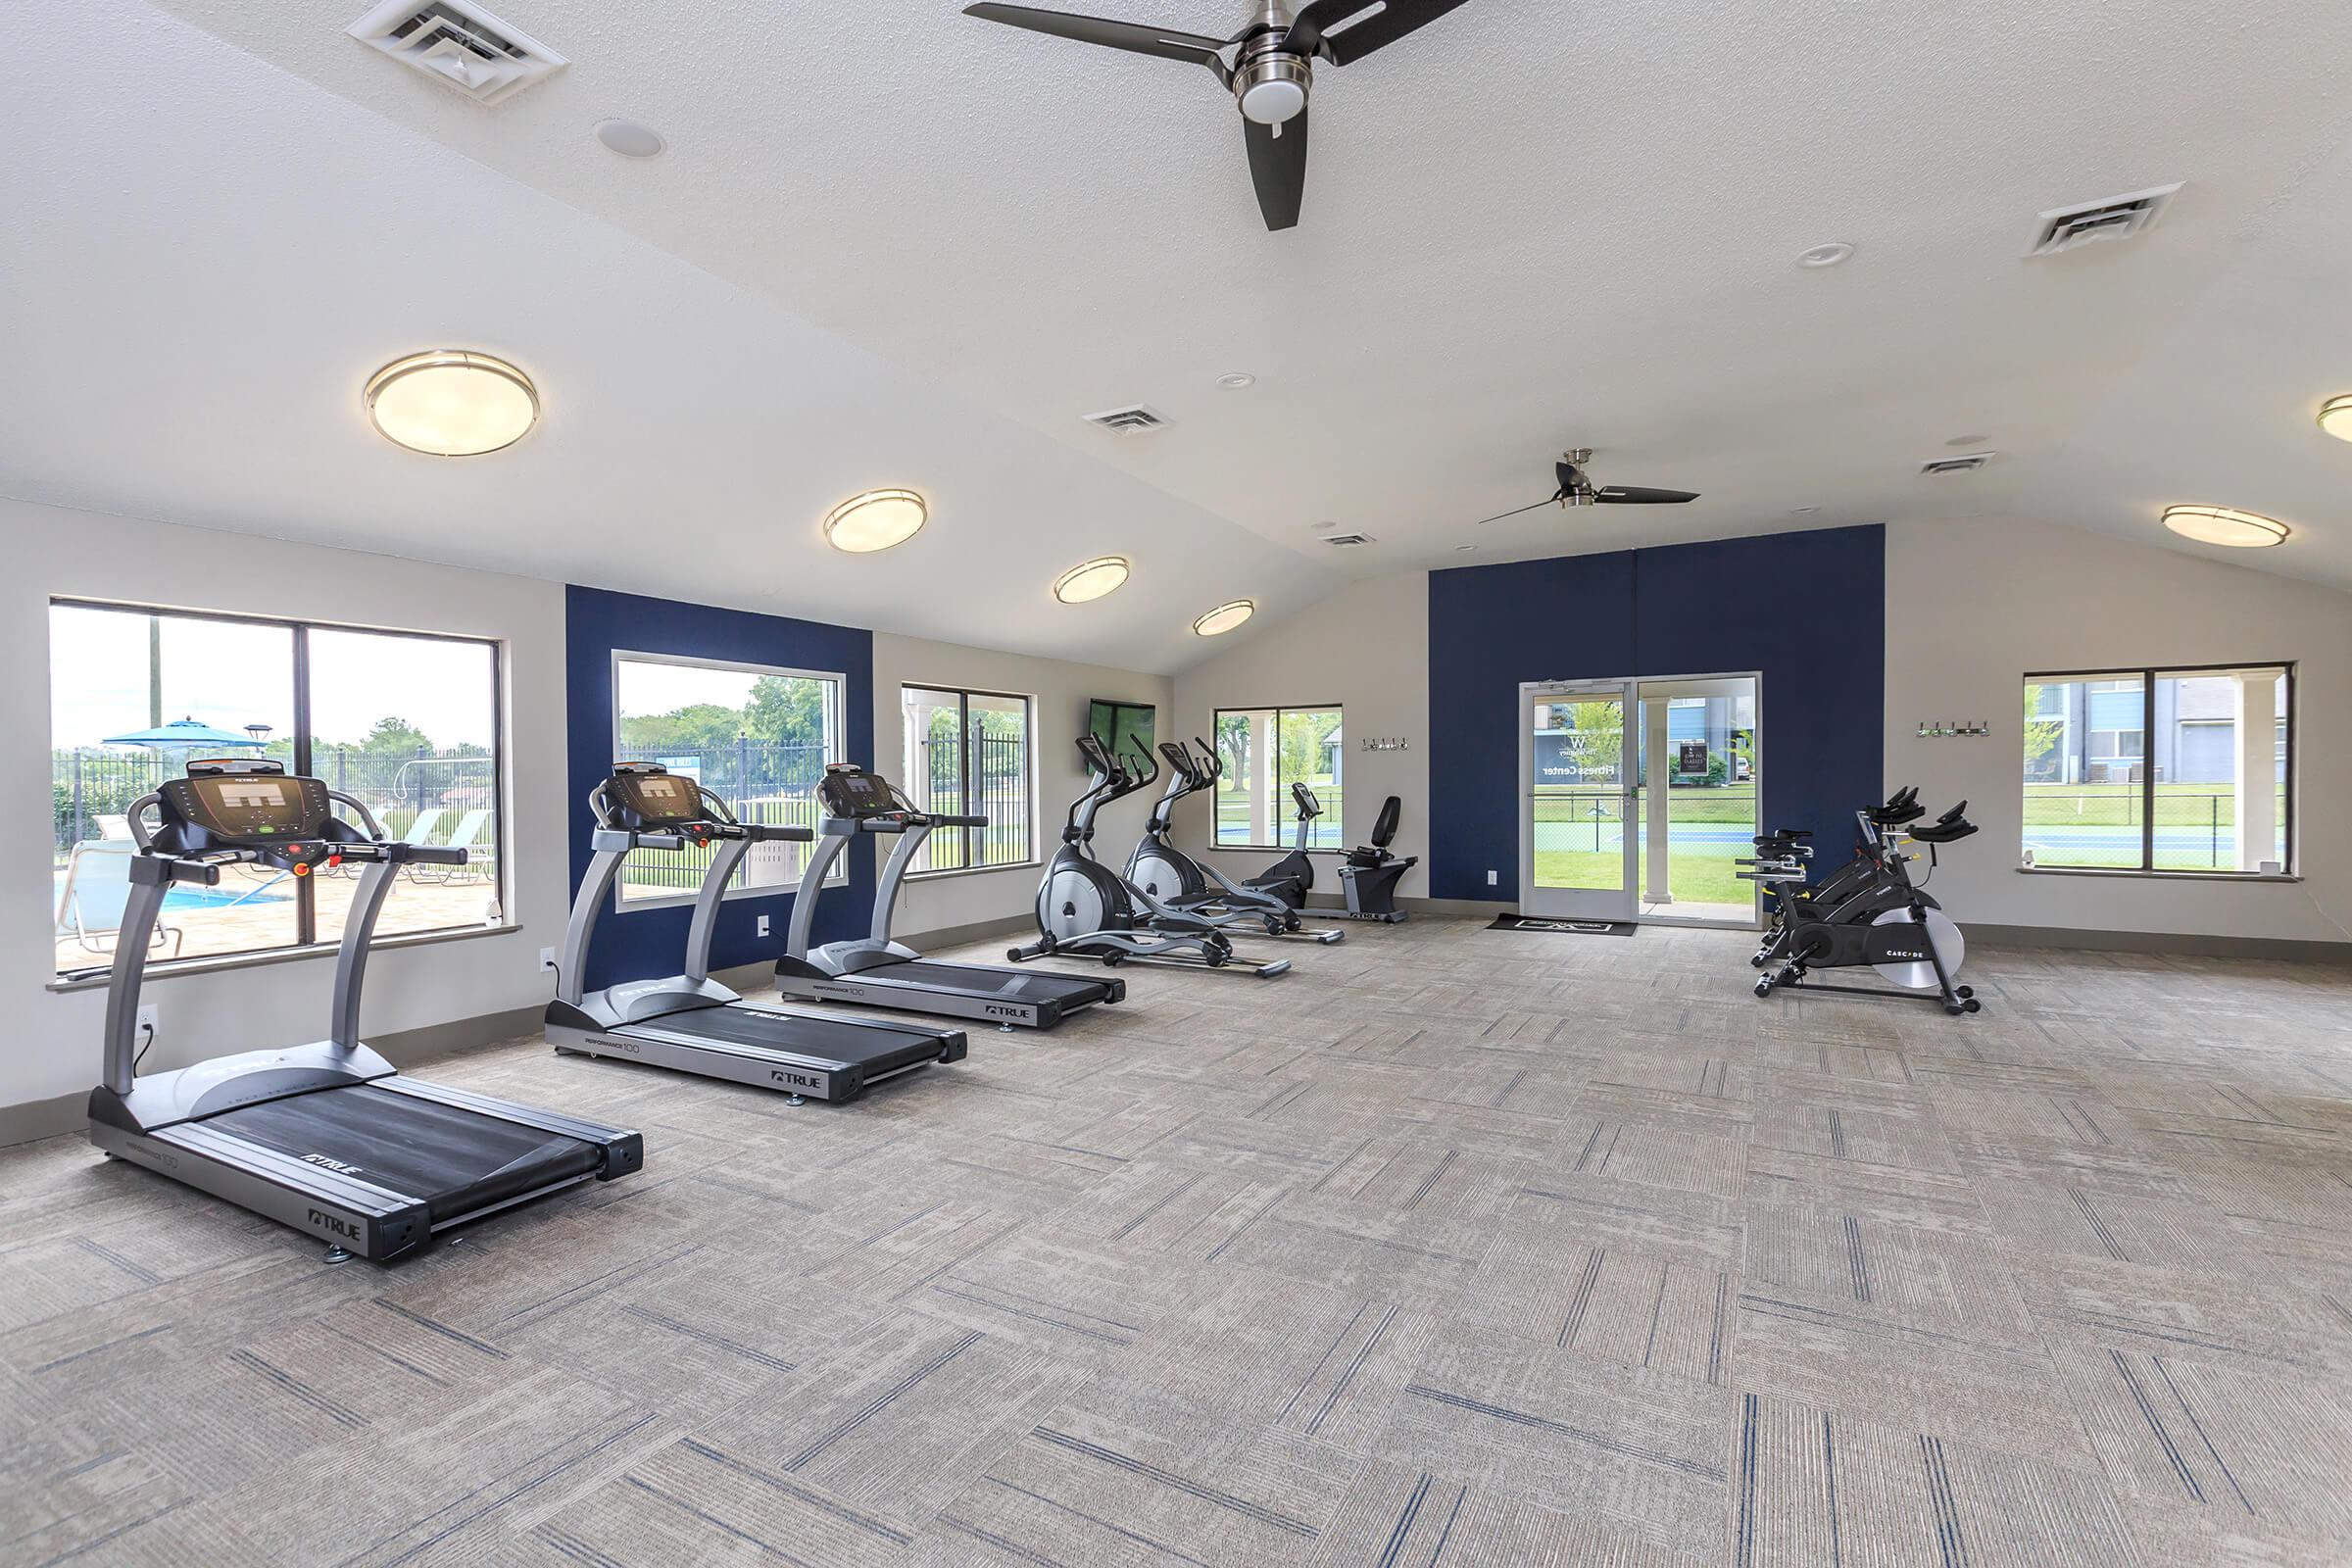 Stay In Shape With Our Fitness Center Here At The Whitney In Franklin, Tennessee